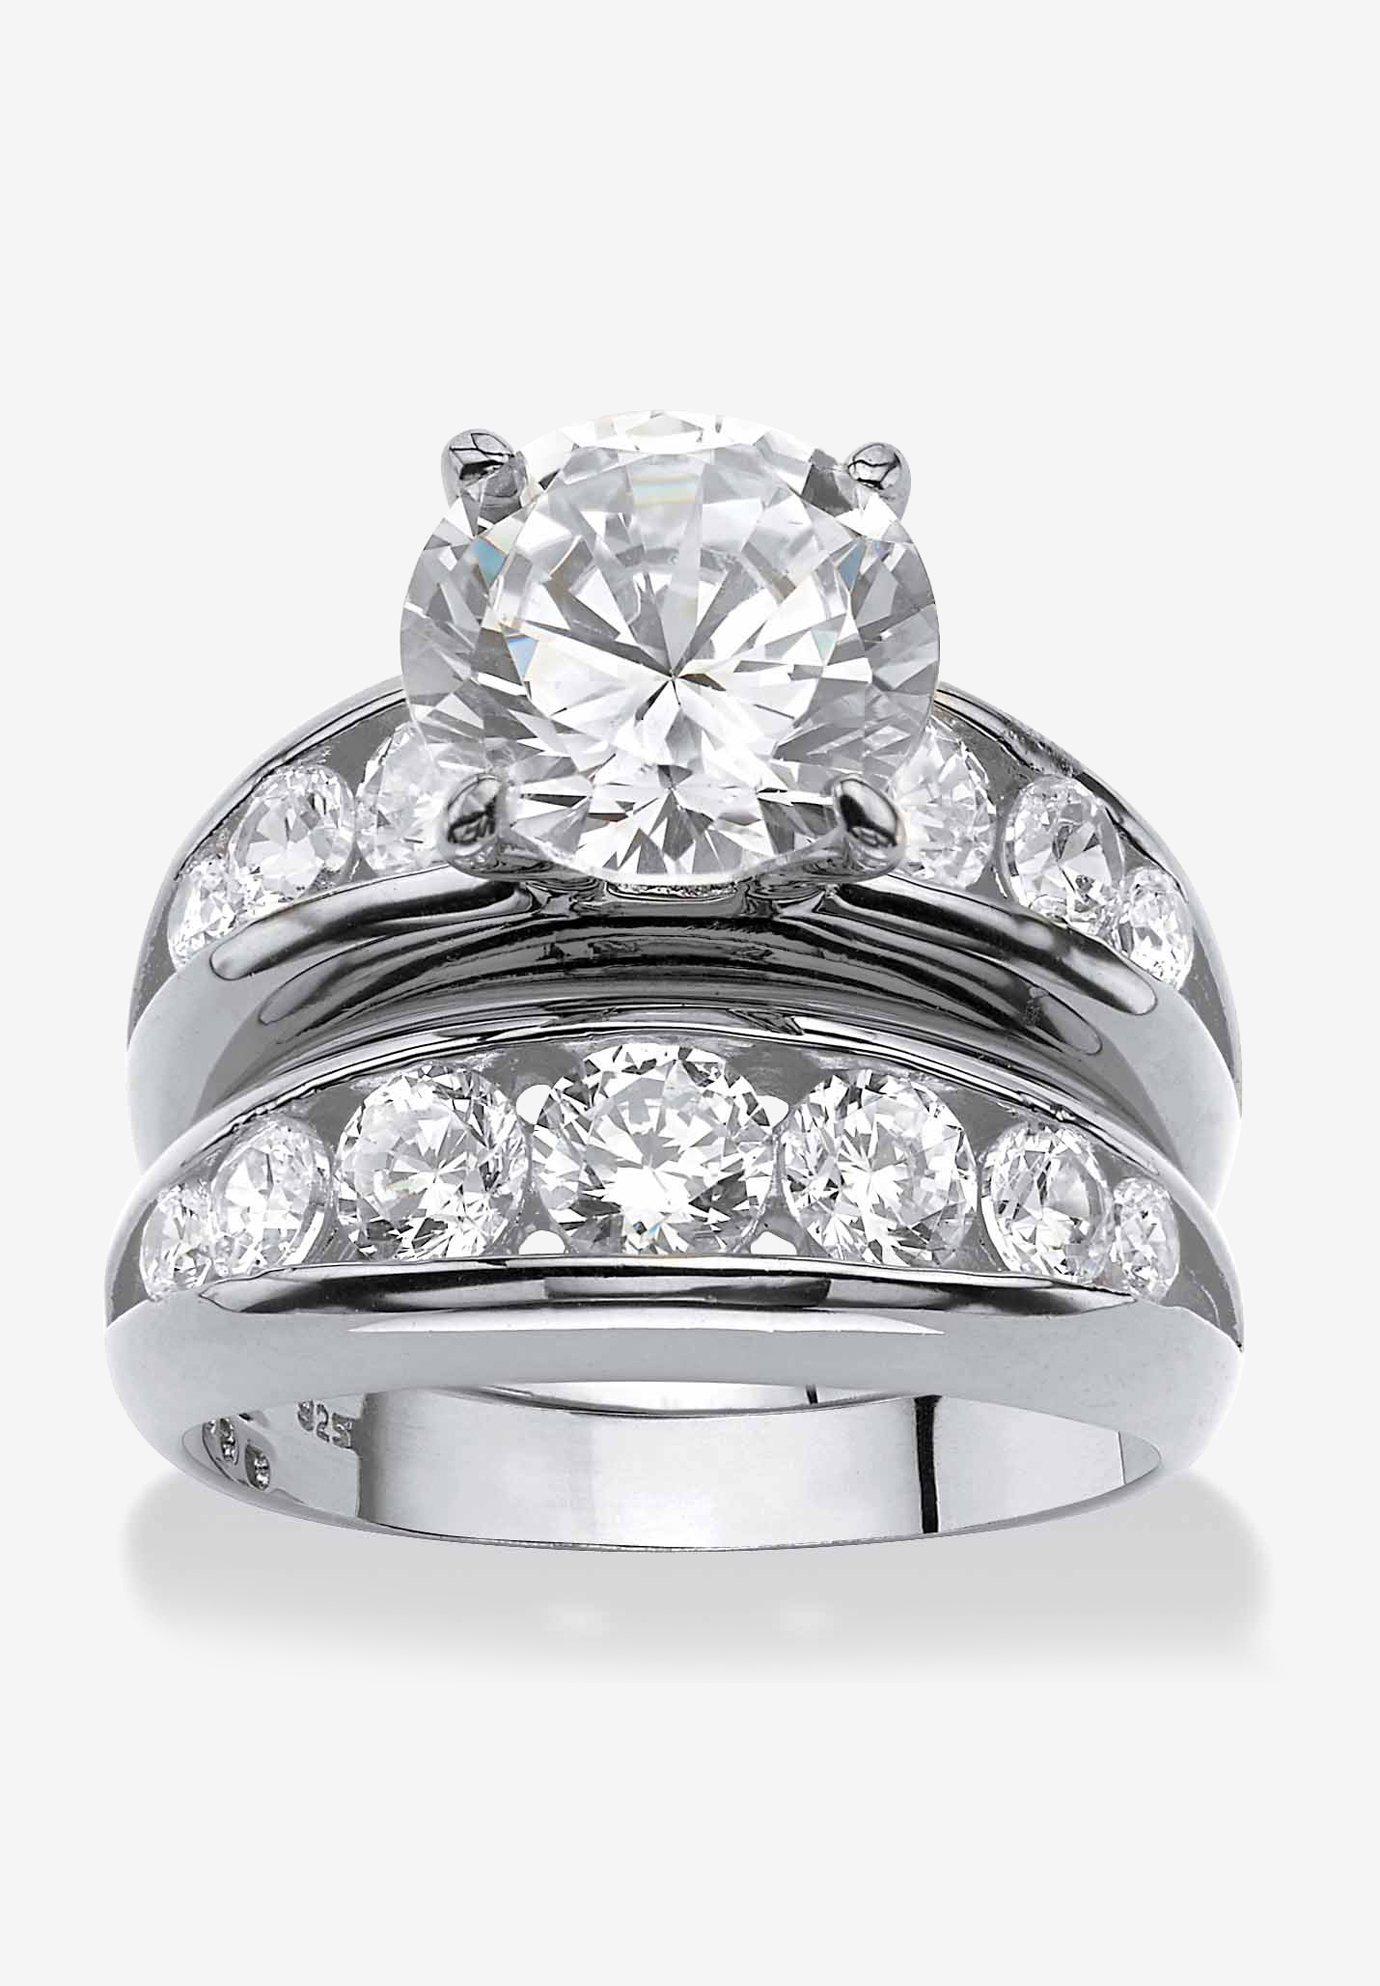 Silvertone Round Cubic Zirconia 2-Piece Channel Set Bridal Ring Set,